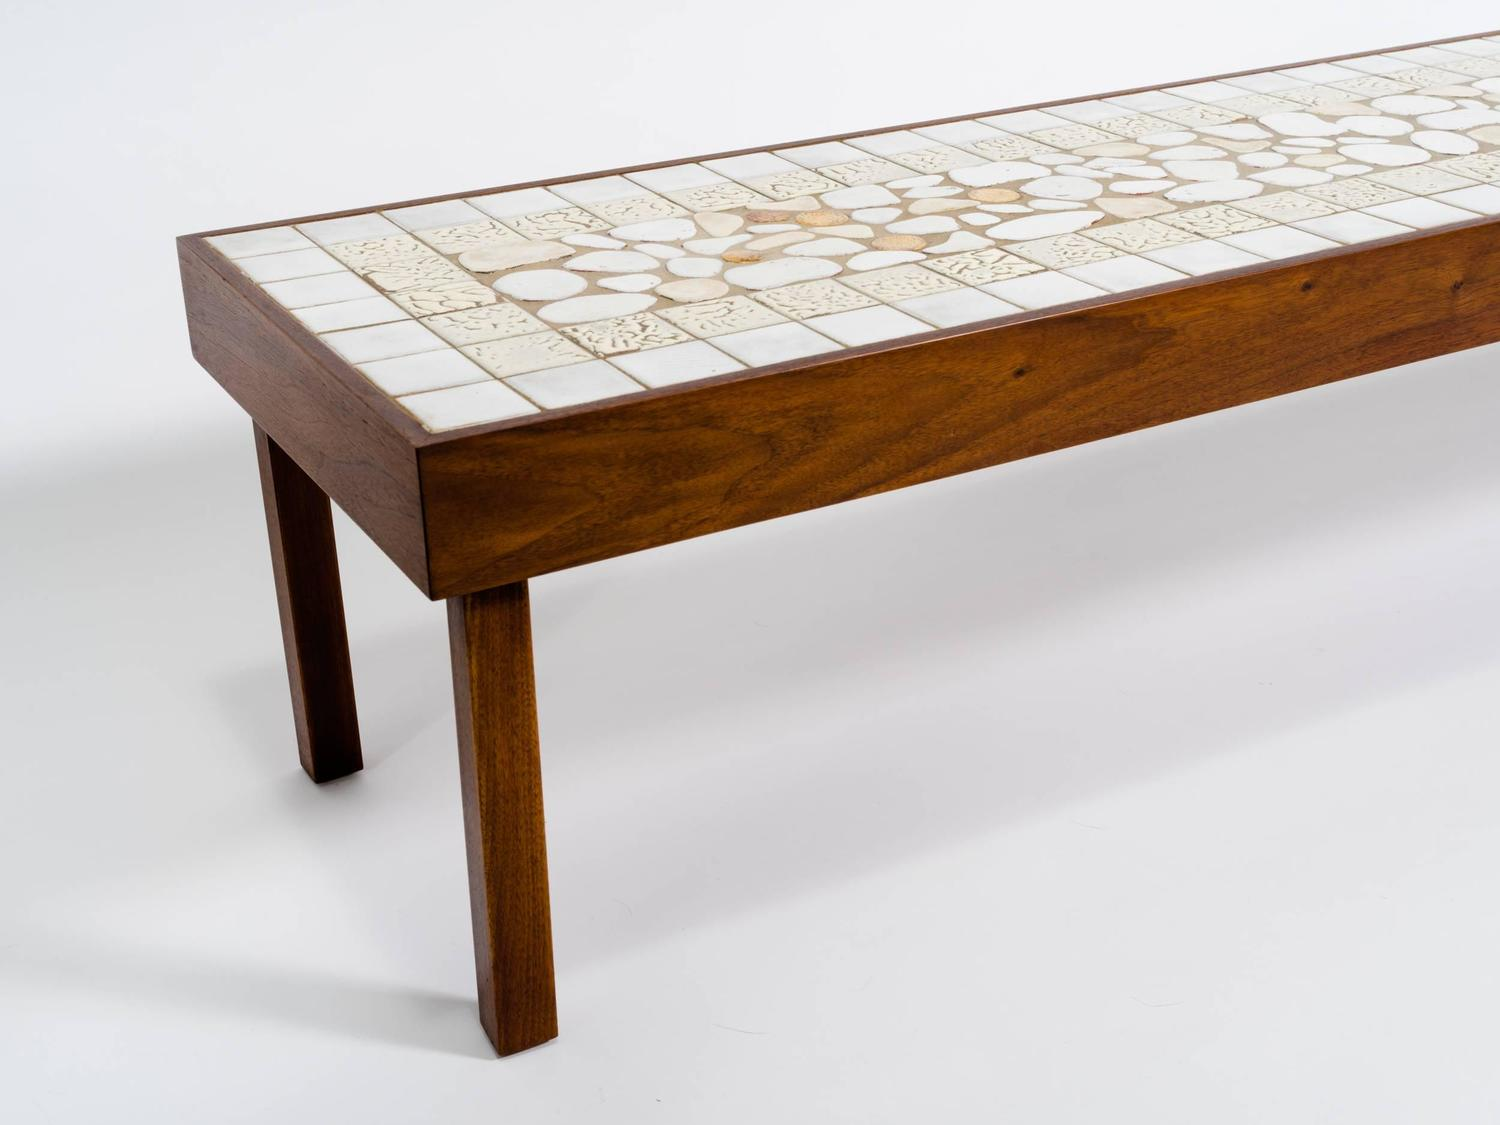 Extra Long Walnut And Ceramic Tile Coffee Table At 1stdibs